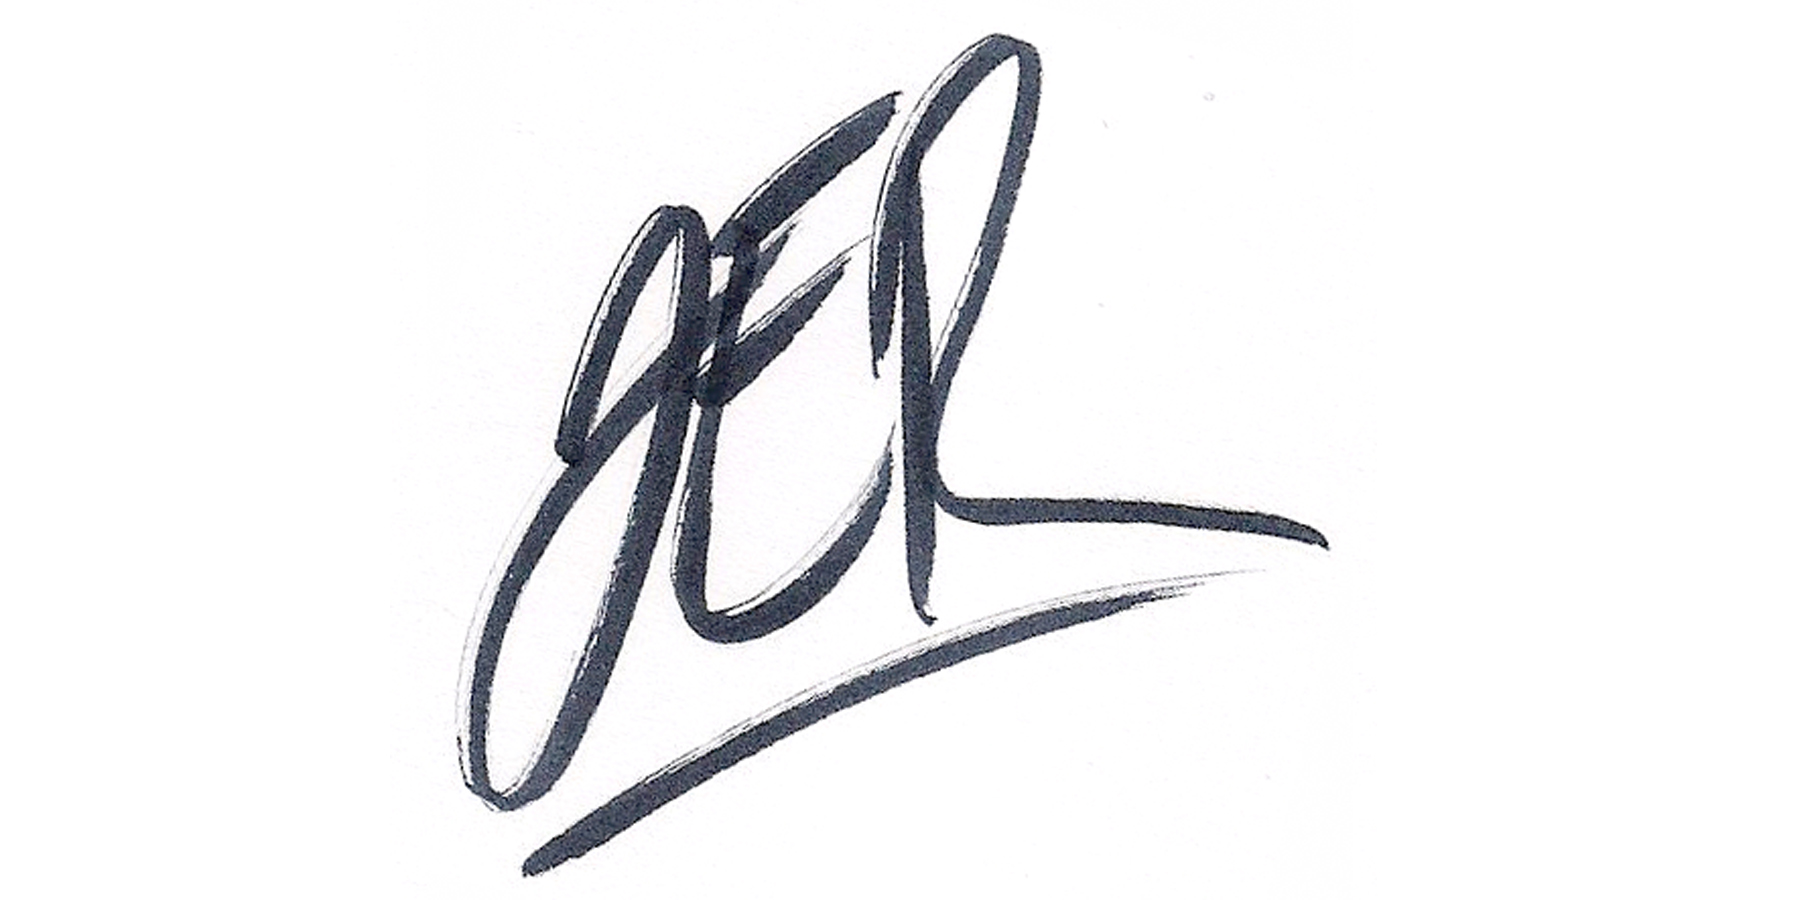 Jeremy Richer Signature